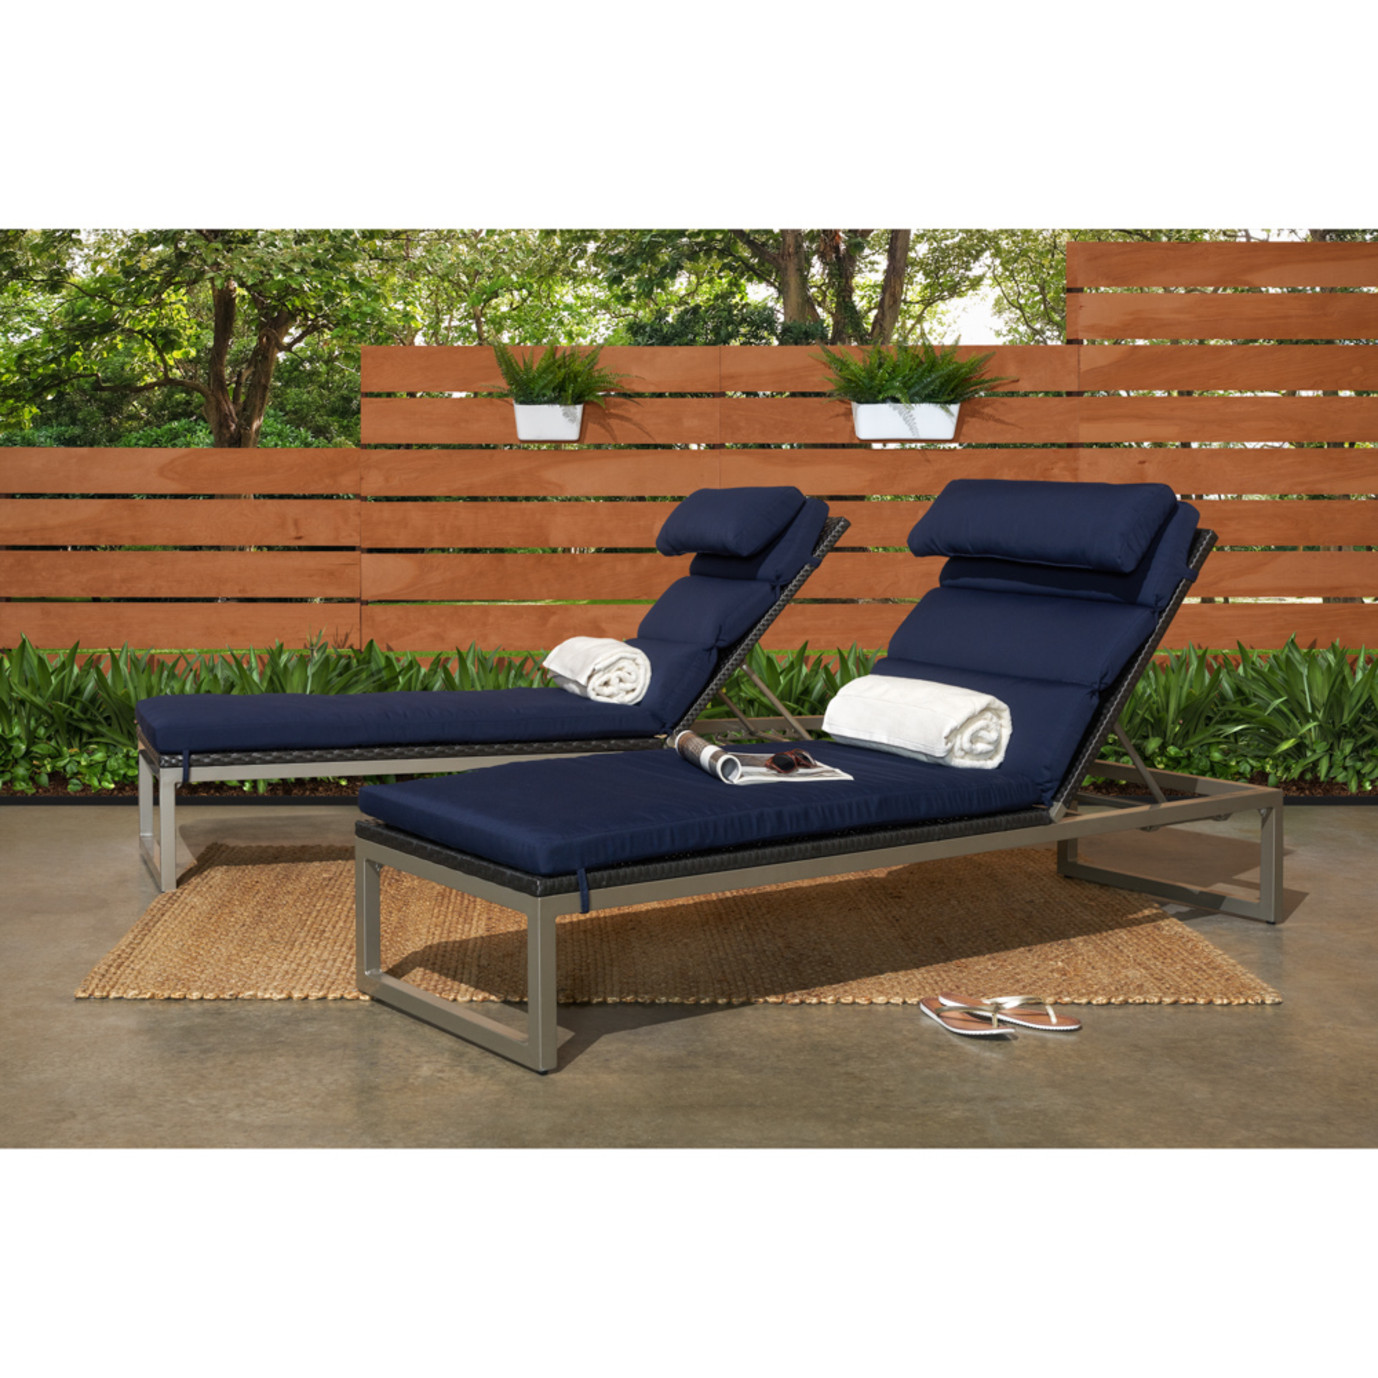 Milo™ Espresso Chaise Lounges - Navy Blue